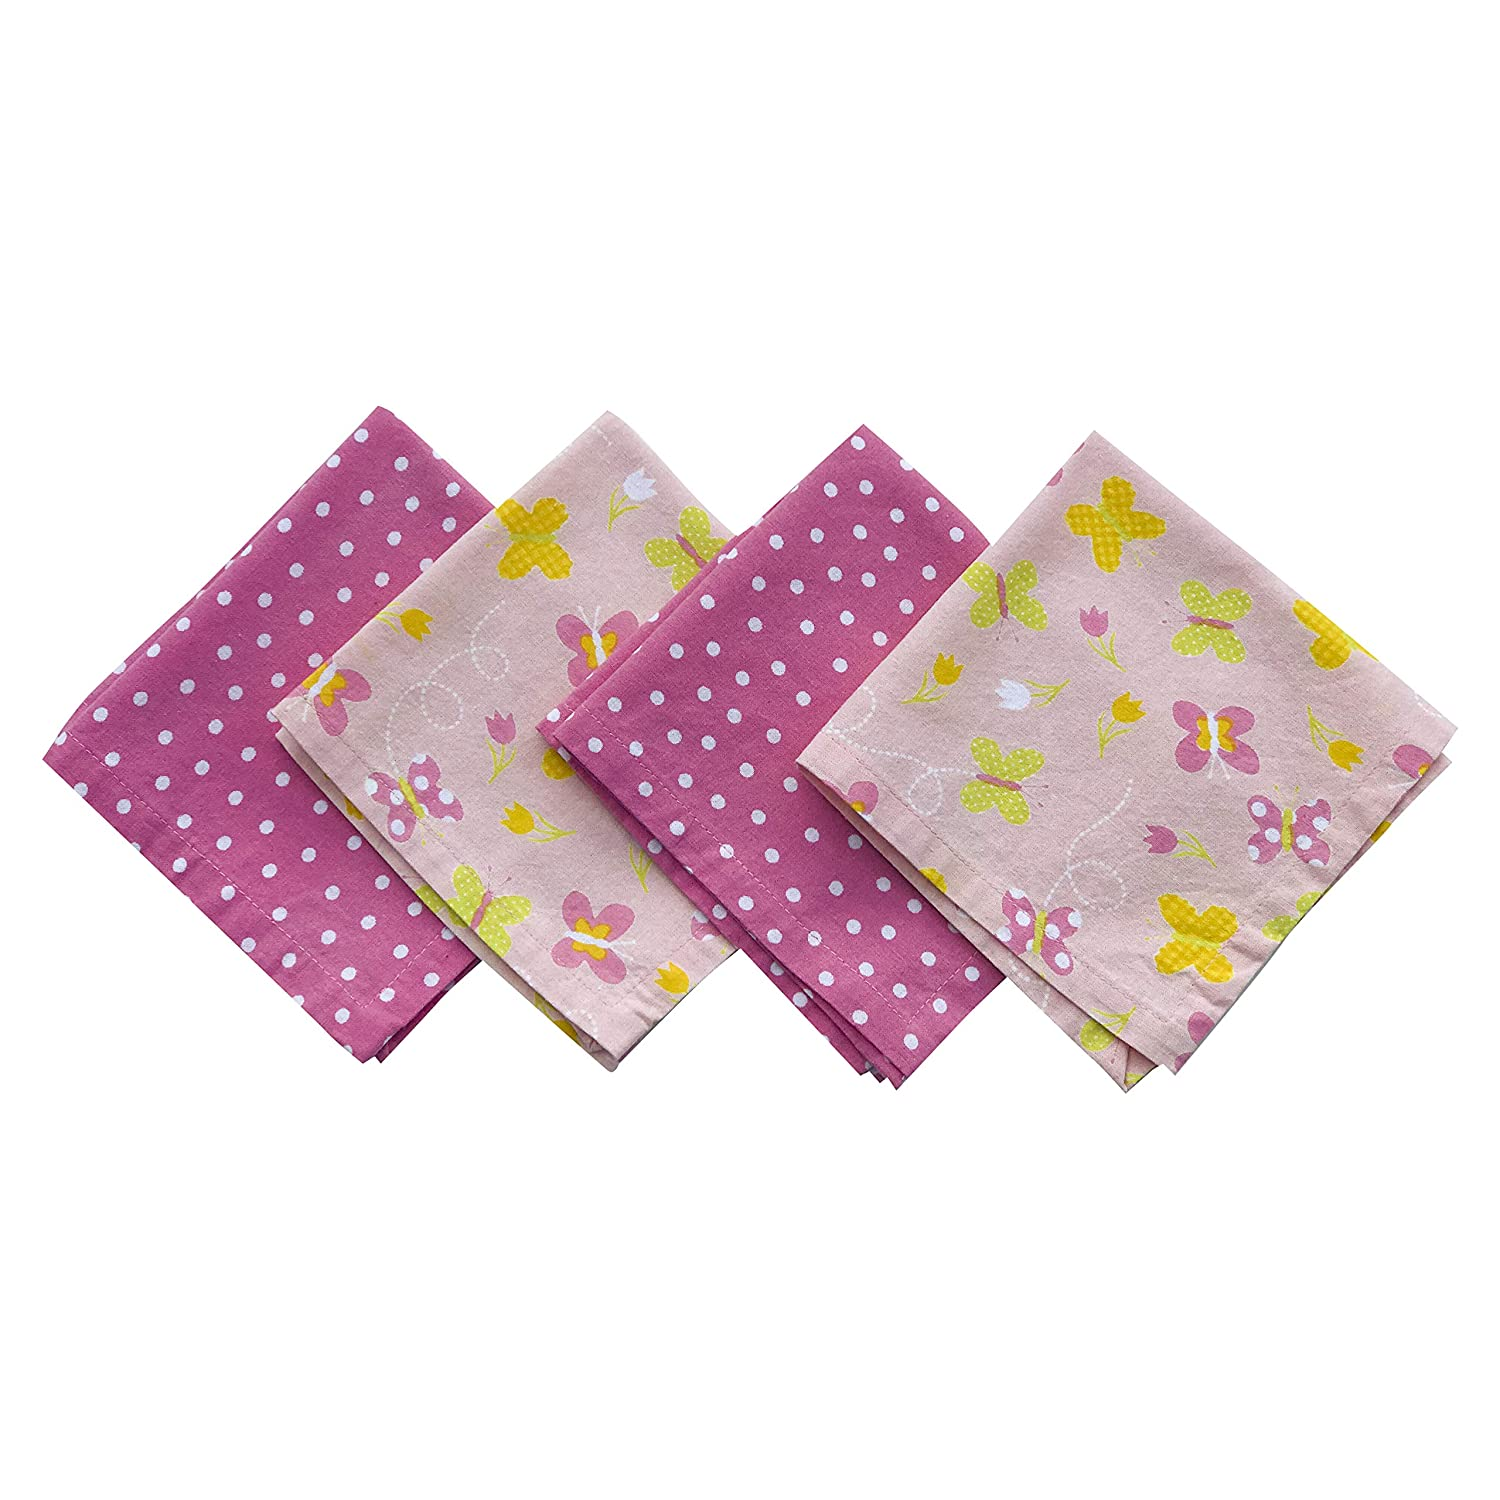 Funkins Reusable Cloth Napkins for Kids | Lunch Boxes | Eco-Friendly | Machine Washable, Durable | Name Tag | Set of 4, 12x12 Soft Cotton Napkins | Butterflies MyFunkins Ltd.